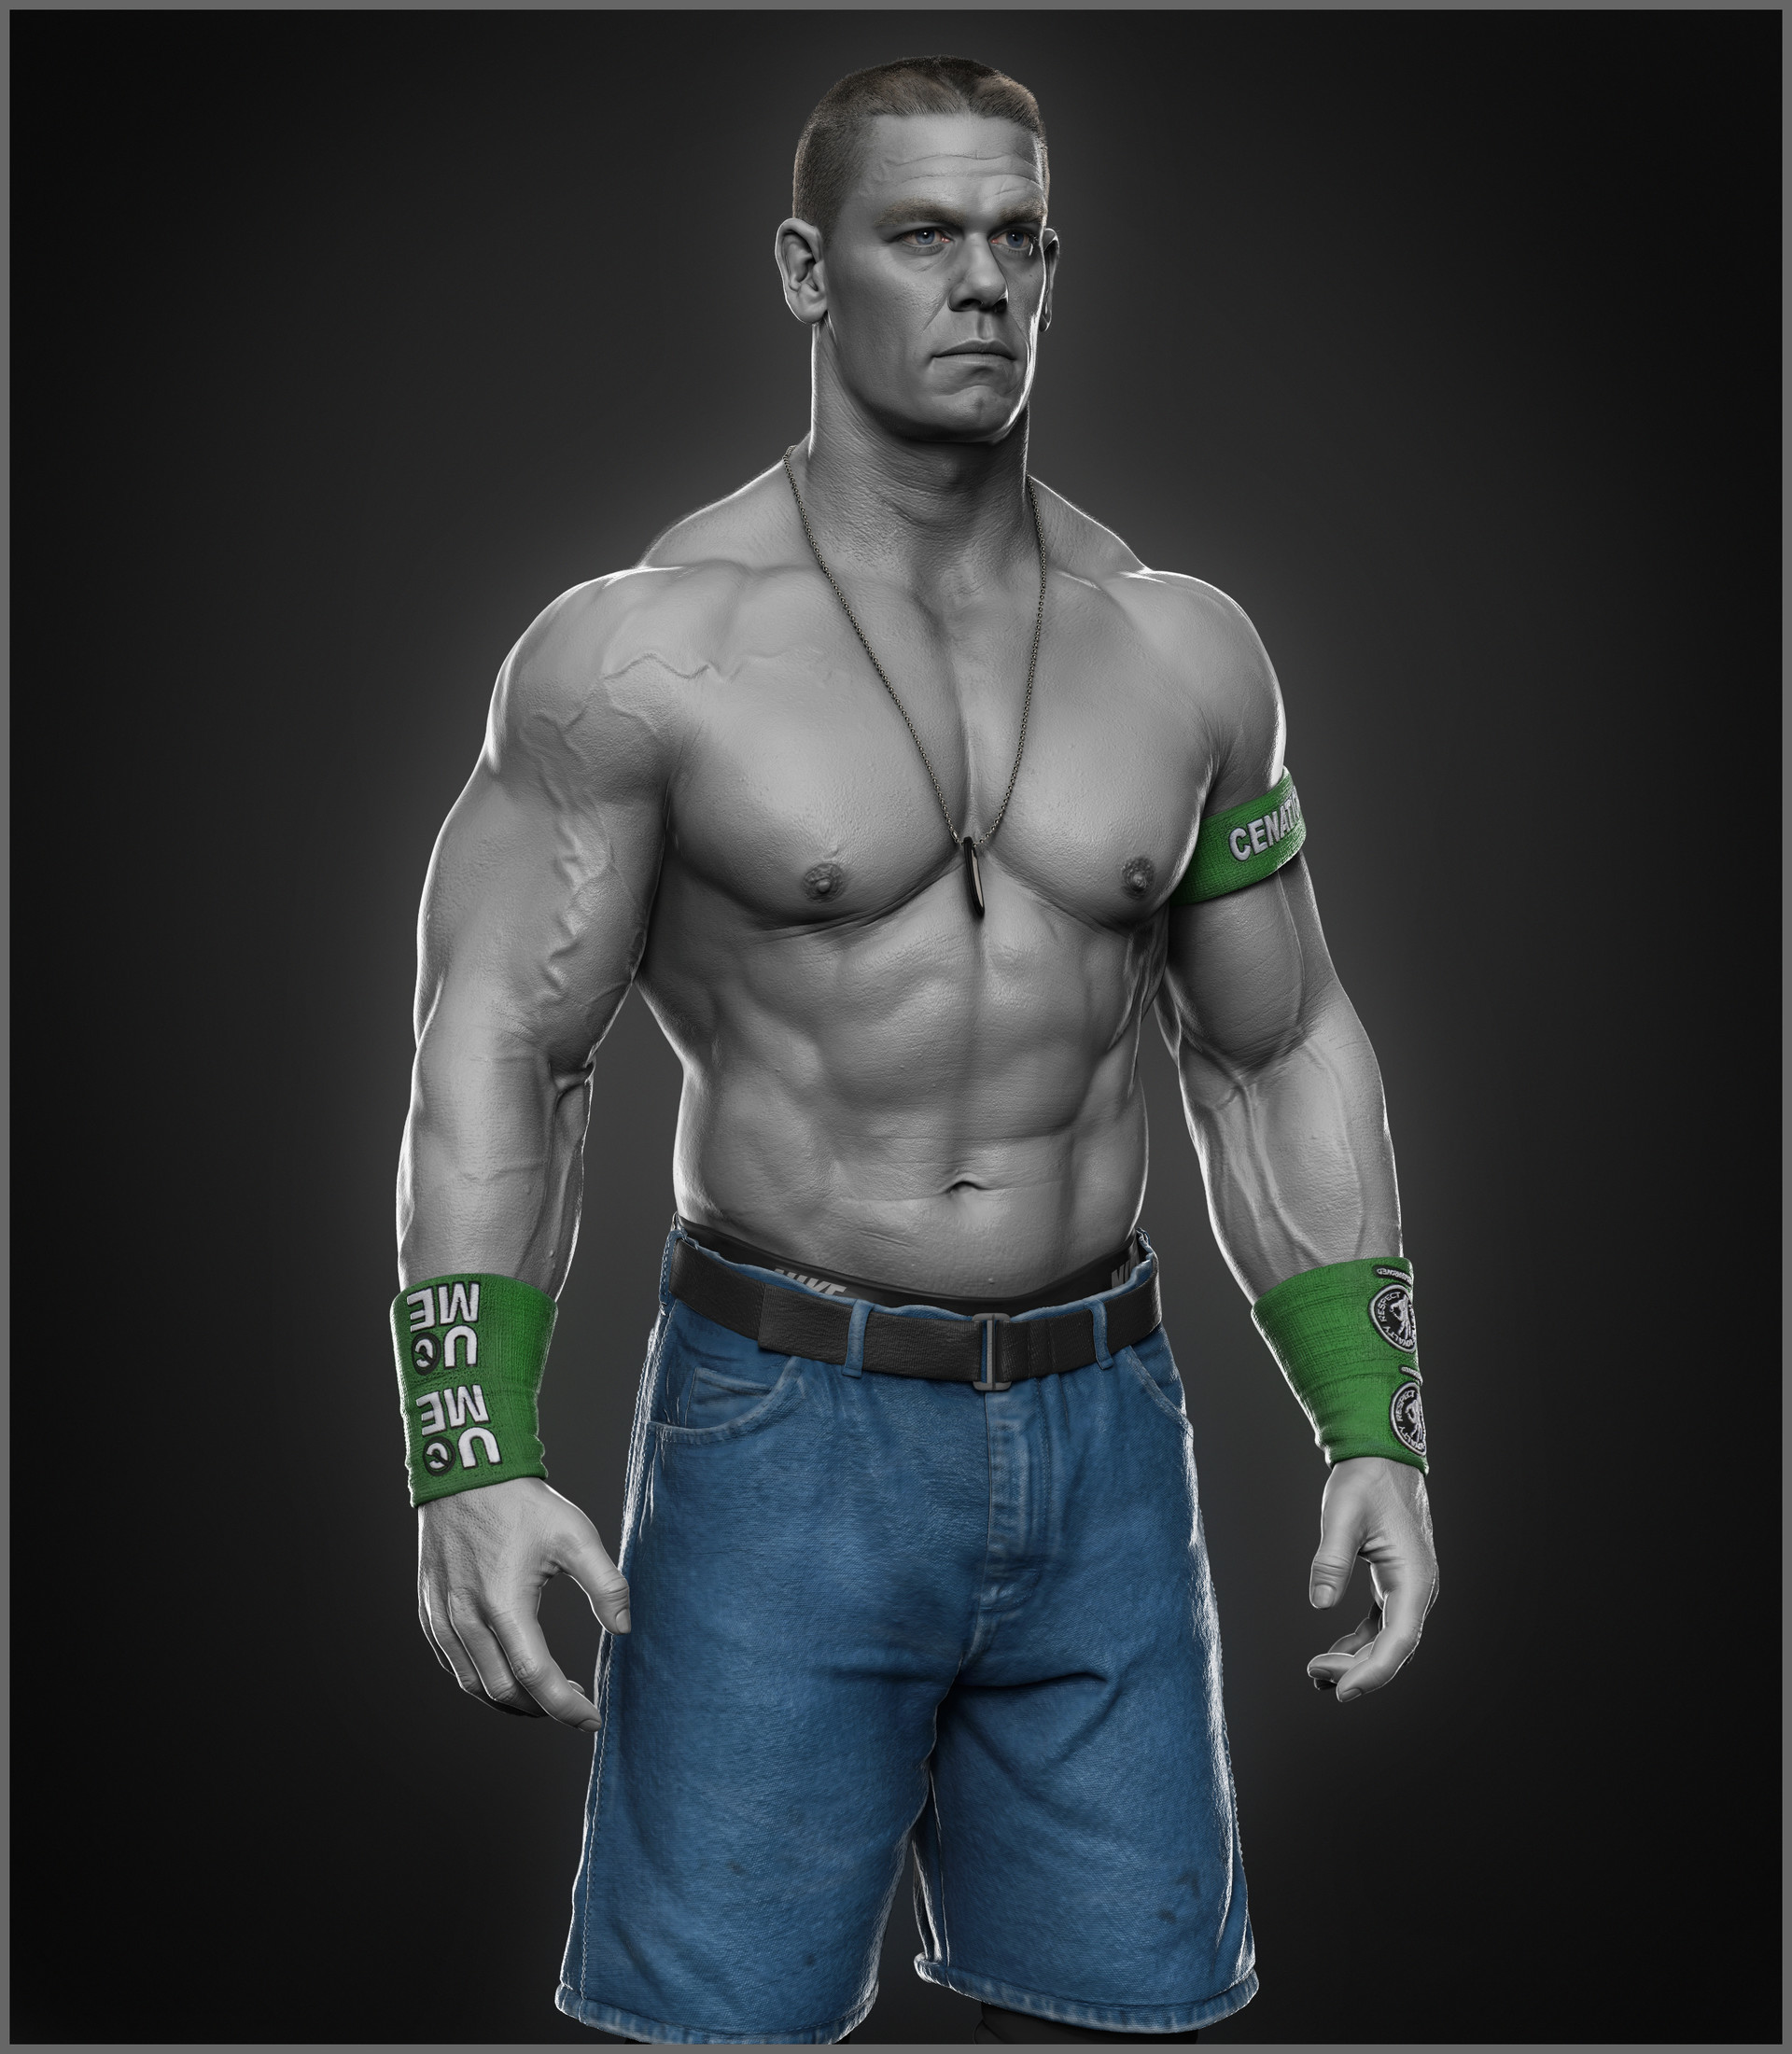 John Cena Wallpaper Rise Above Hate (63+ Images